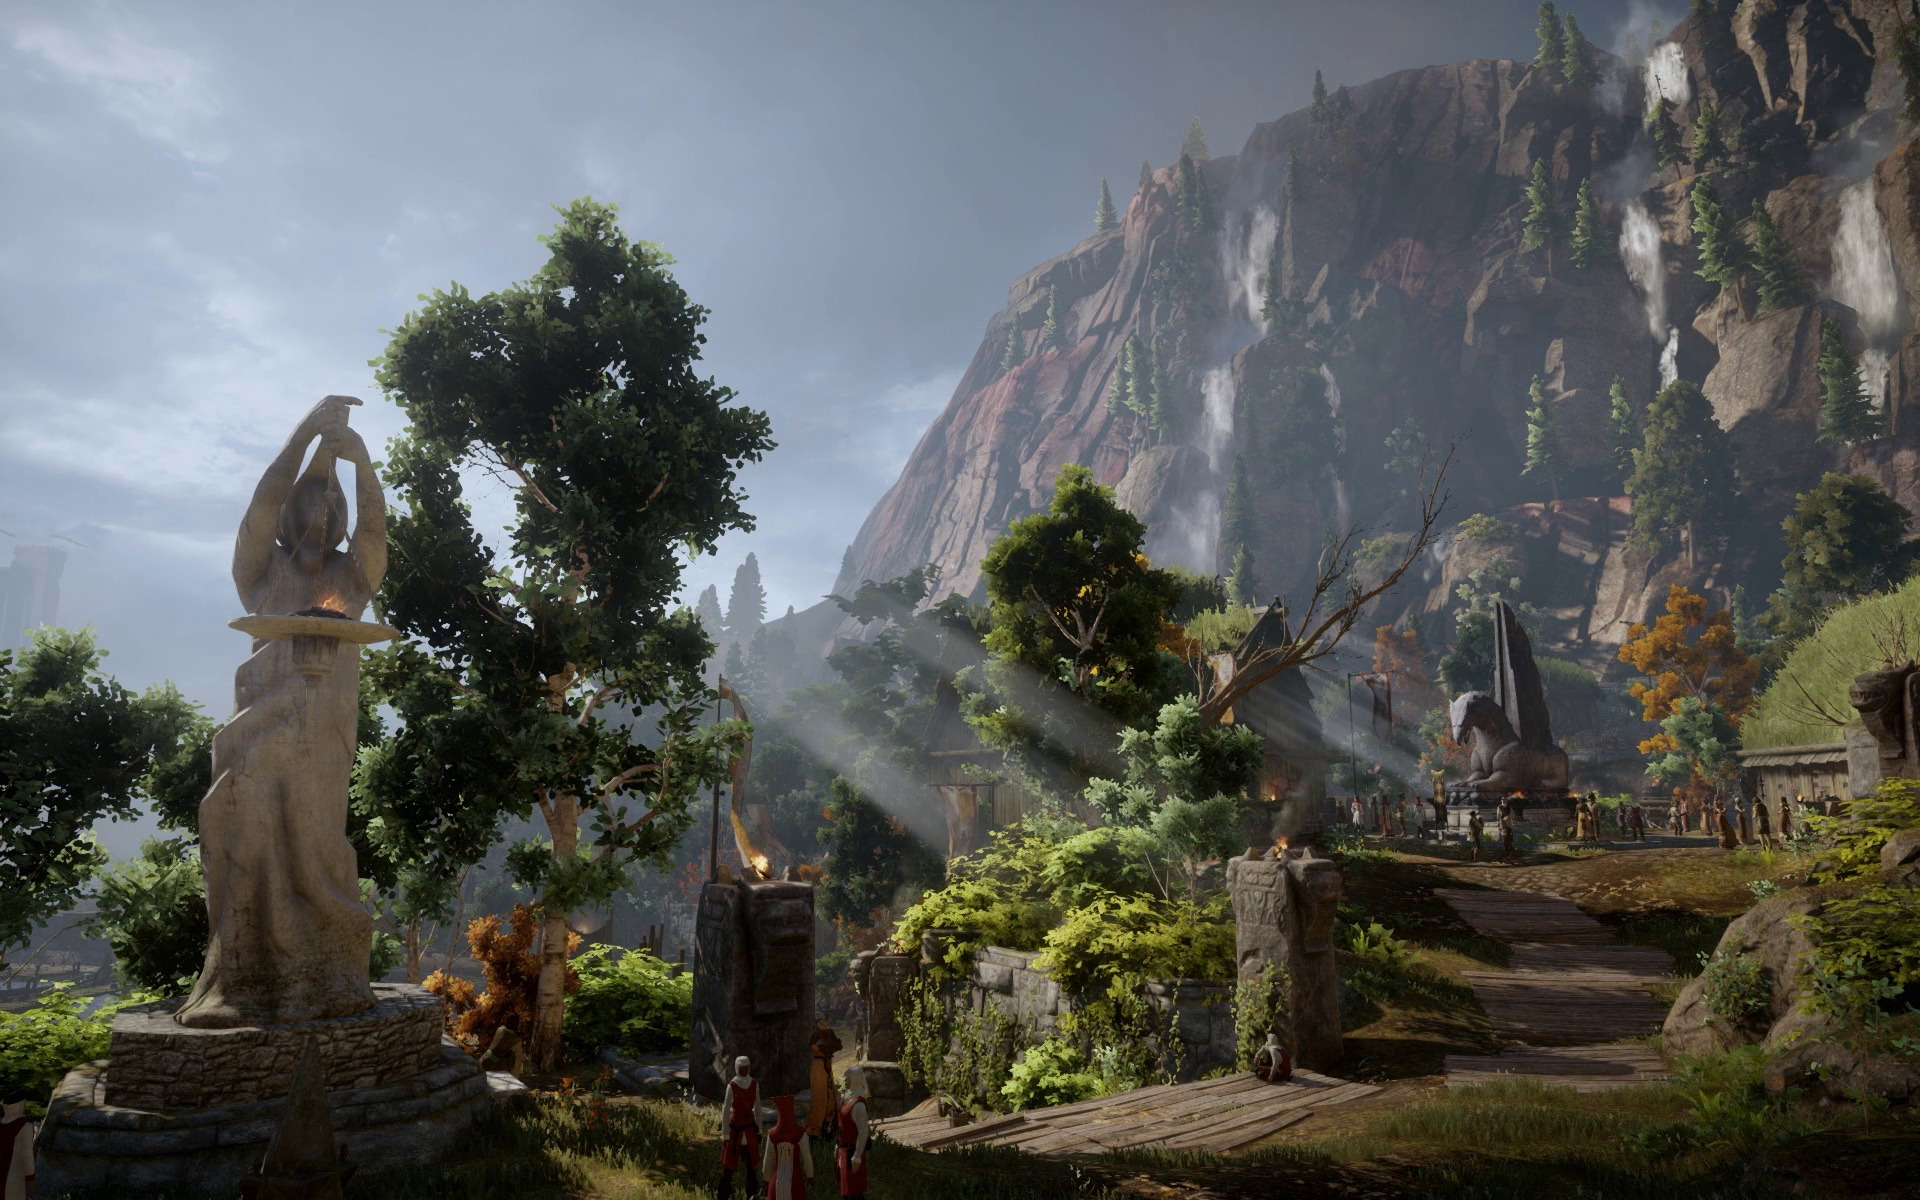 Animated desktop wallpaper of inquisition at dragon age - Dragon age inquisition wallpaper 4k ...